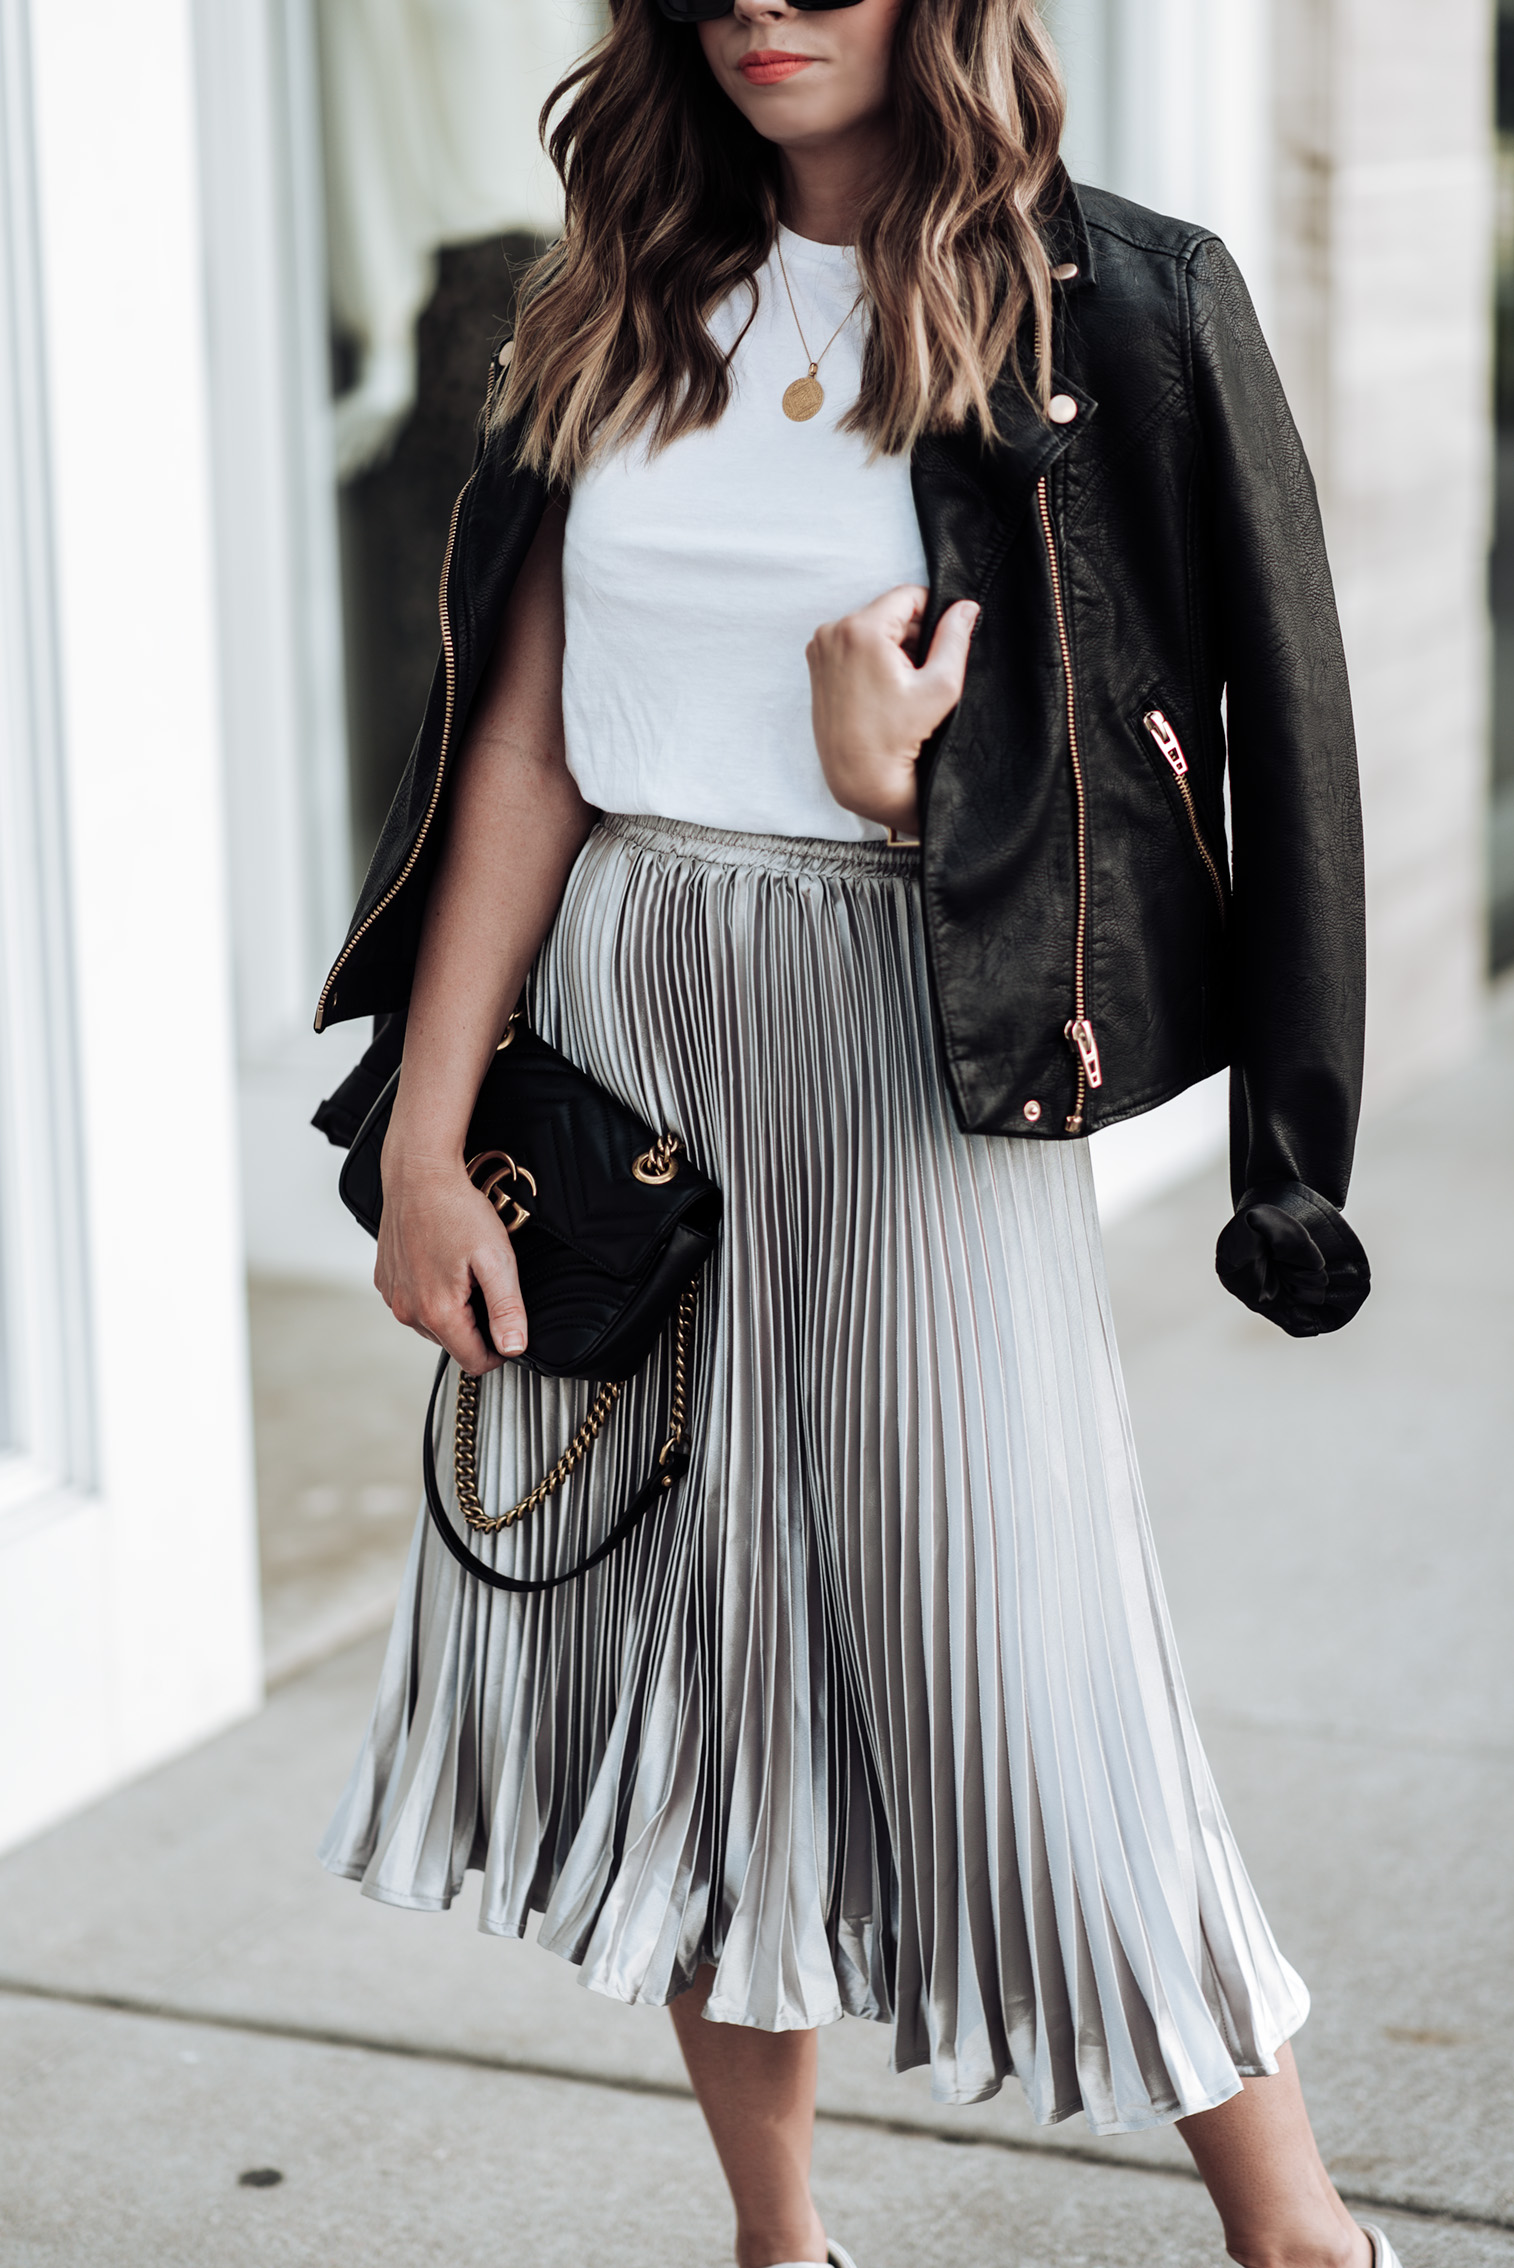 Tiffany Jais Houston fashion and lifestyle blogger | In love with pleats | Click to shop the look | pleated skirt | Streetstyle 2017 | NYFW 2017